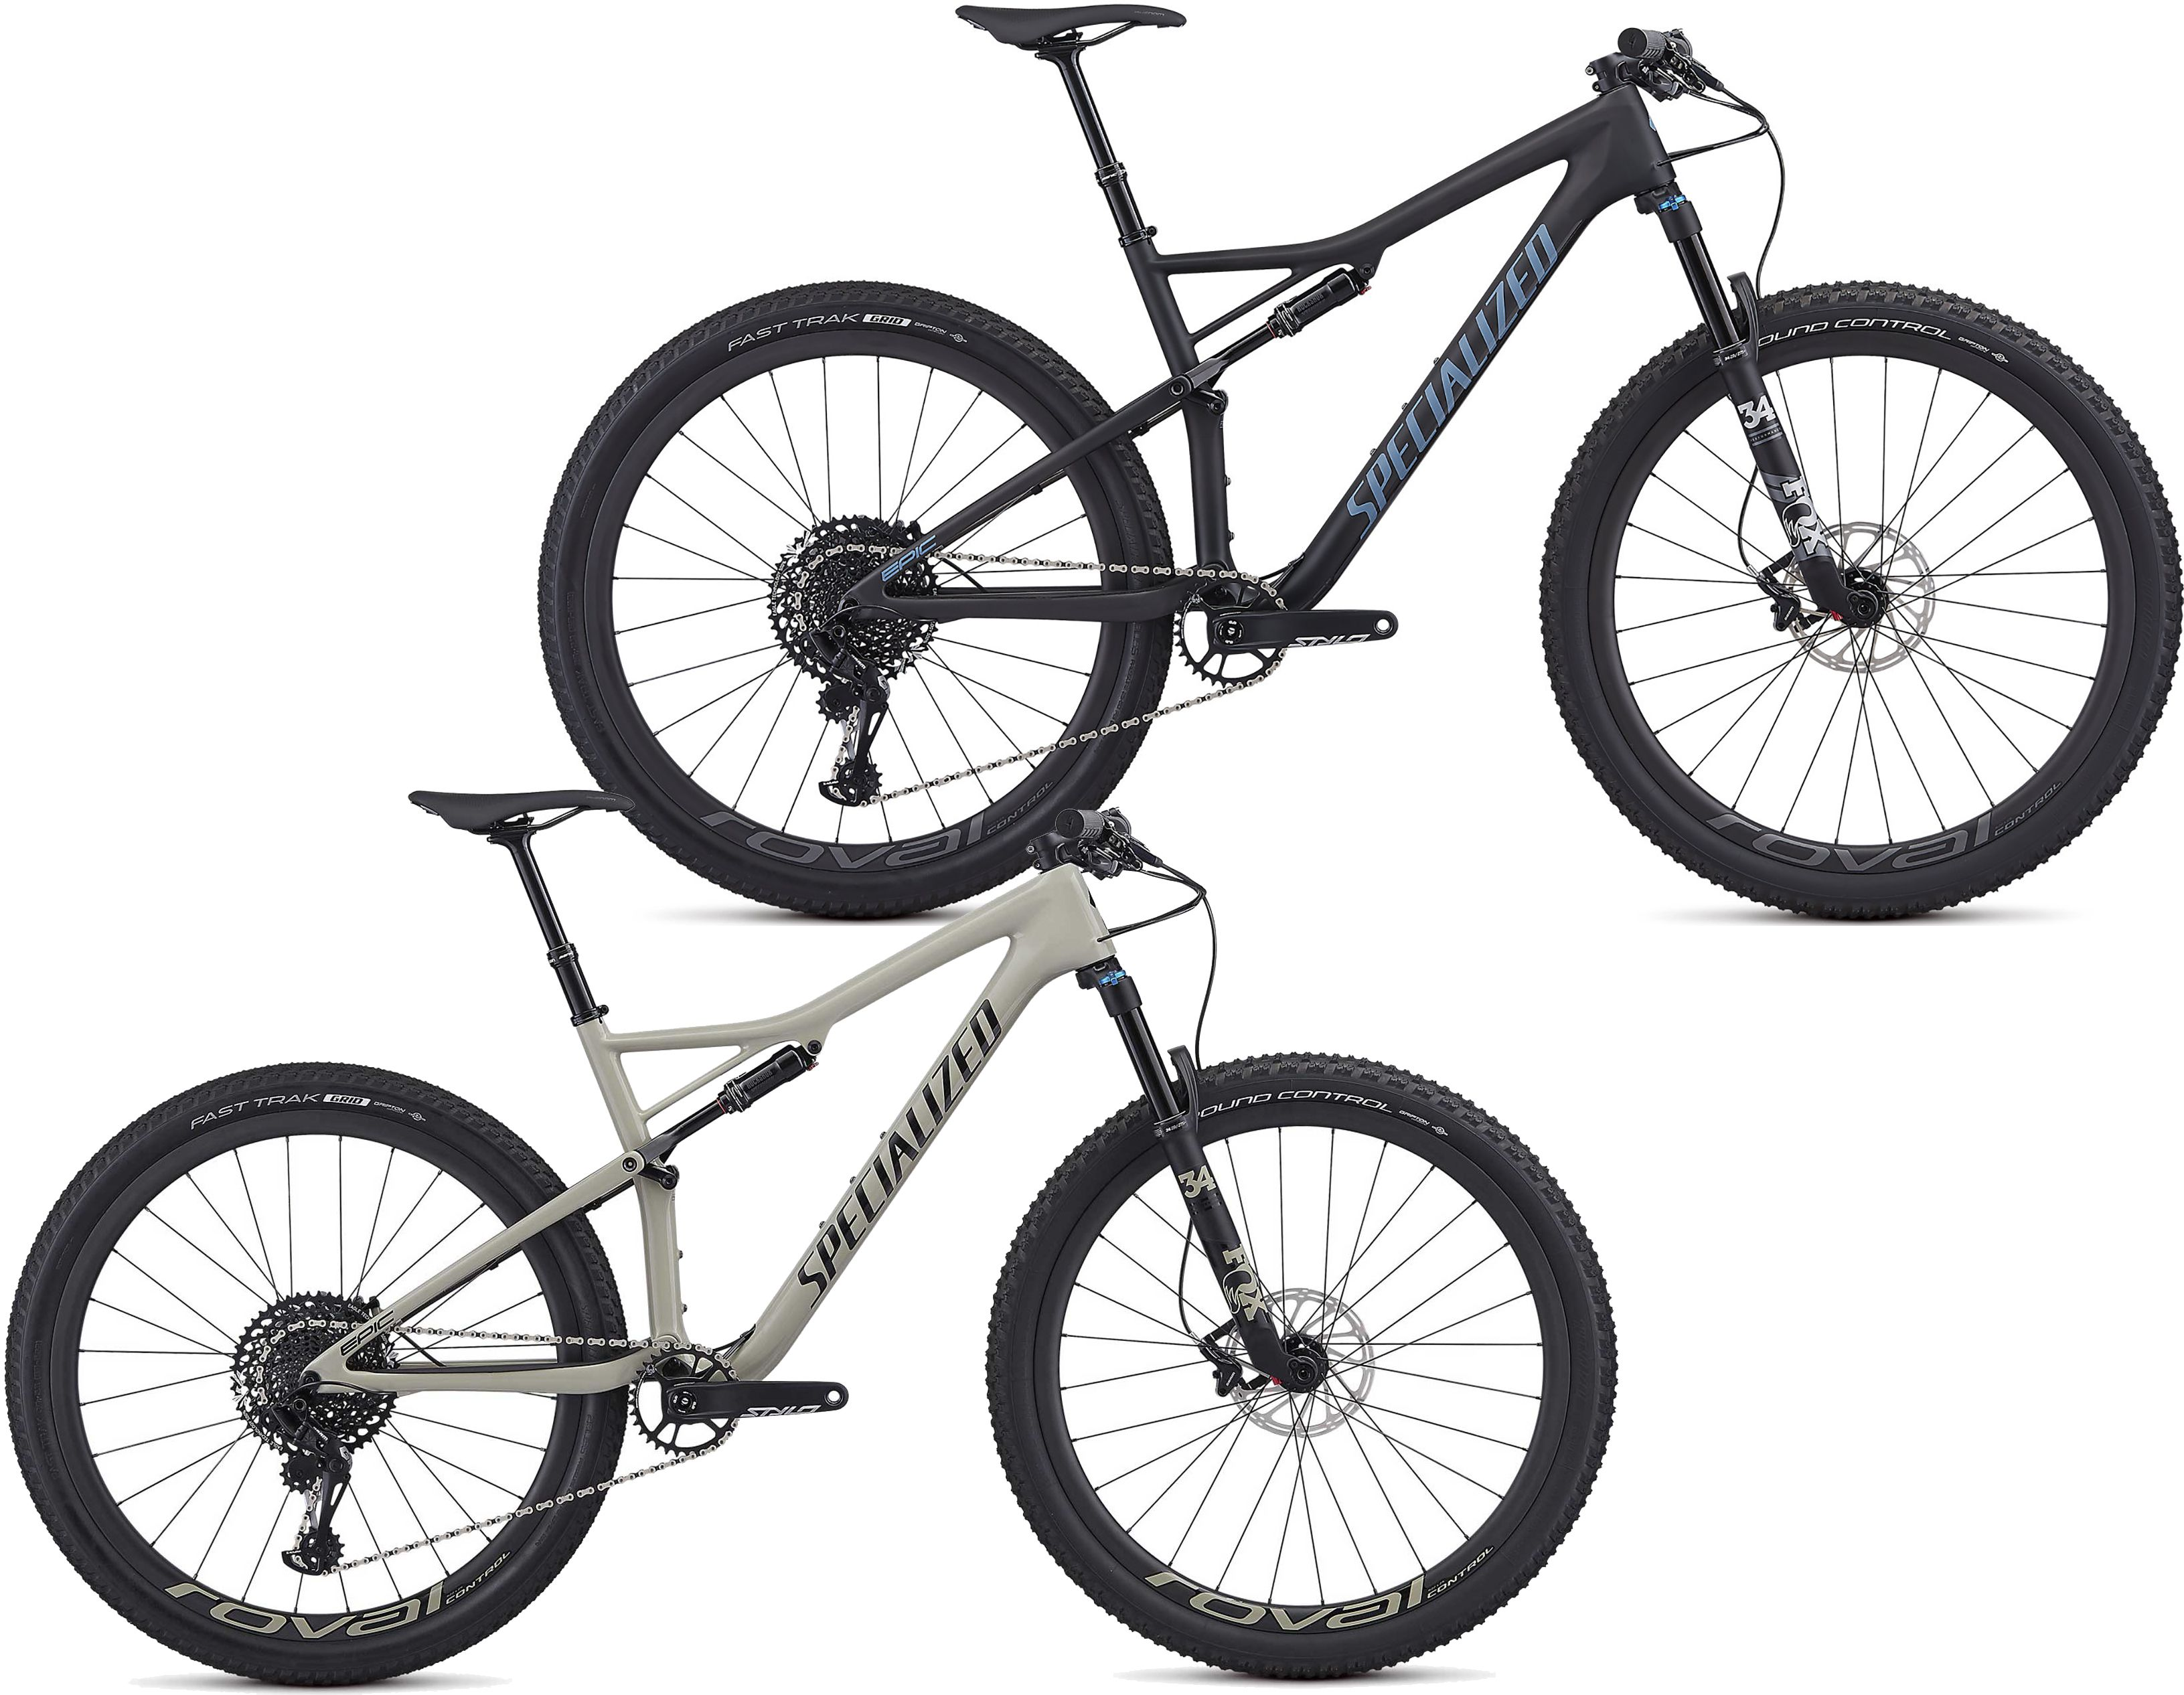 Specialized Epic Expert Evo Carbon 29er Mountain Bike